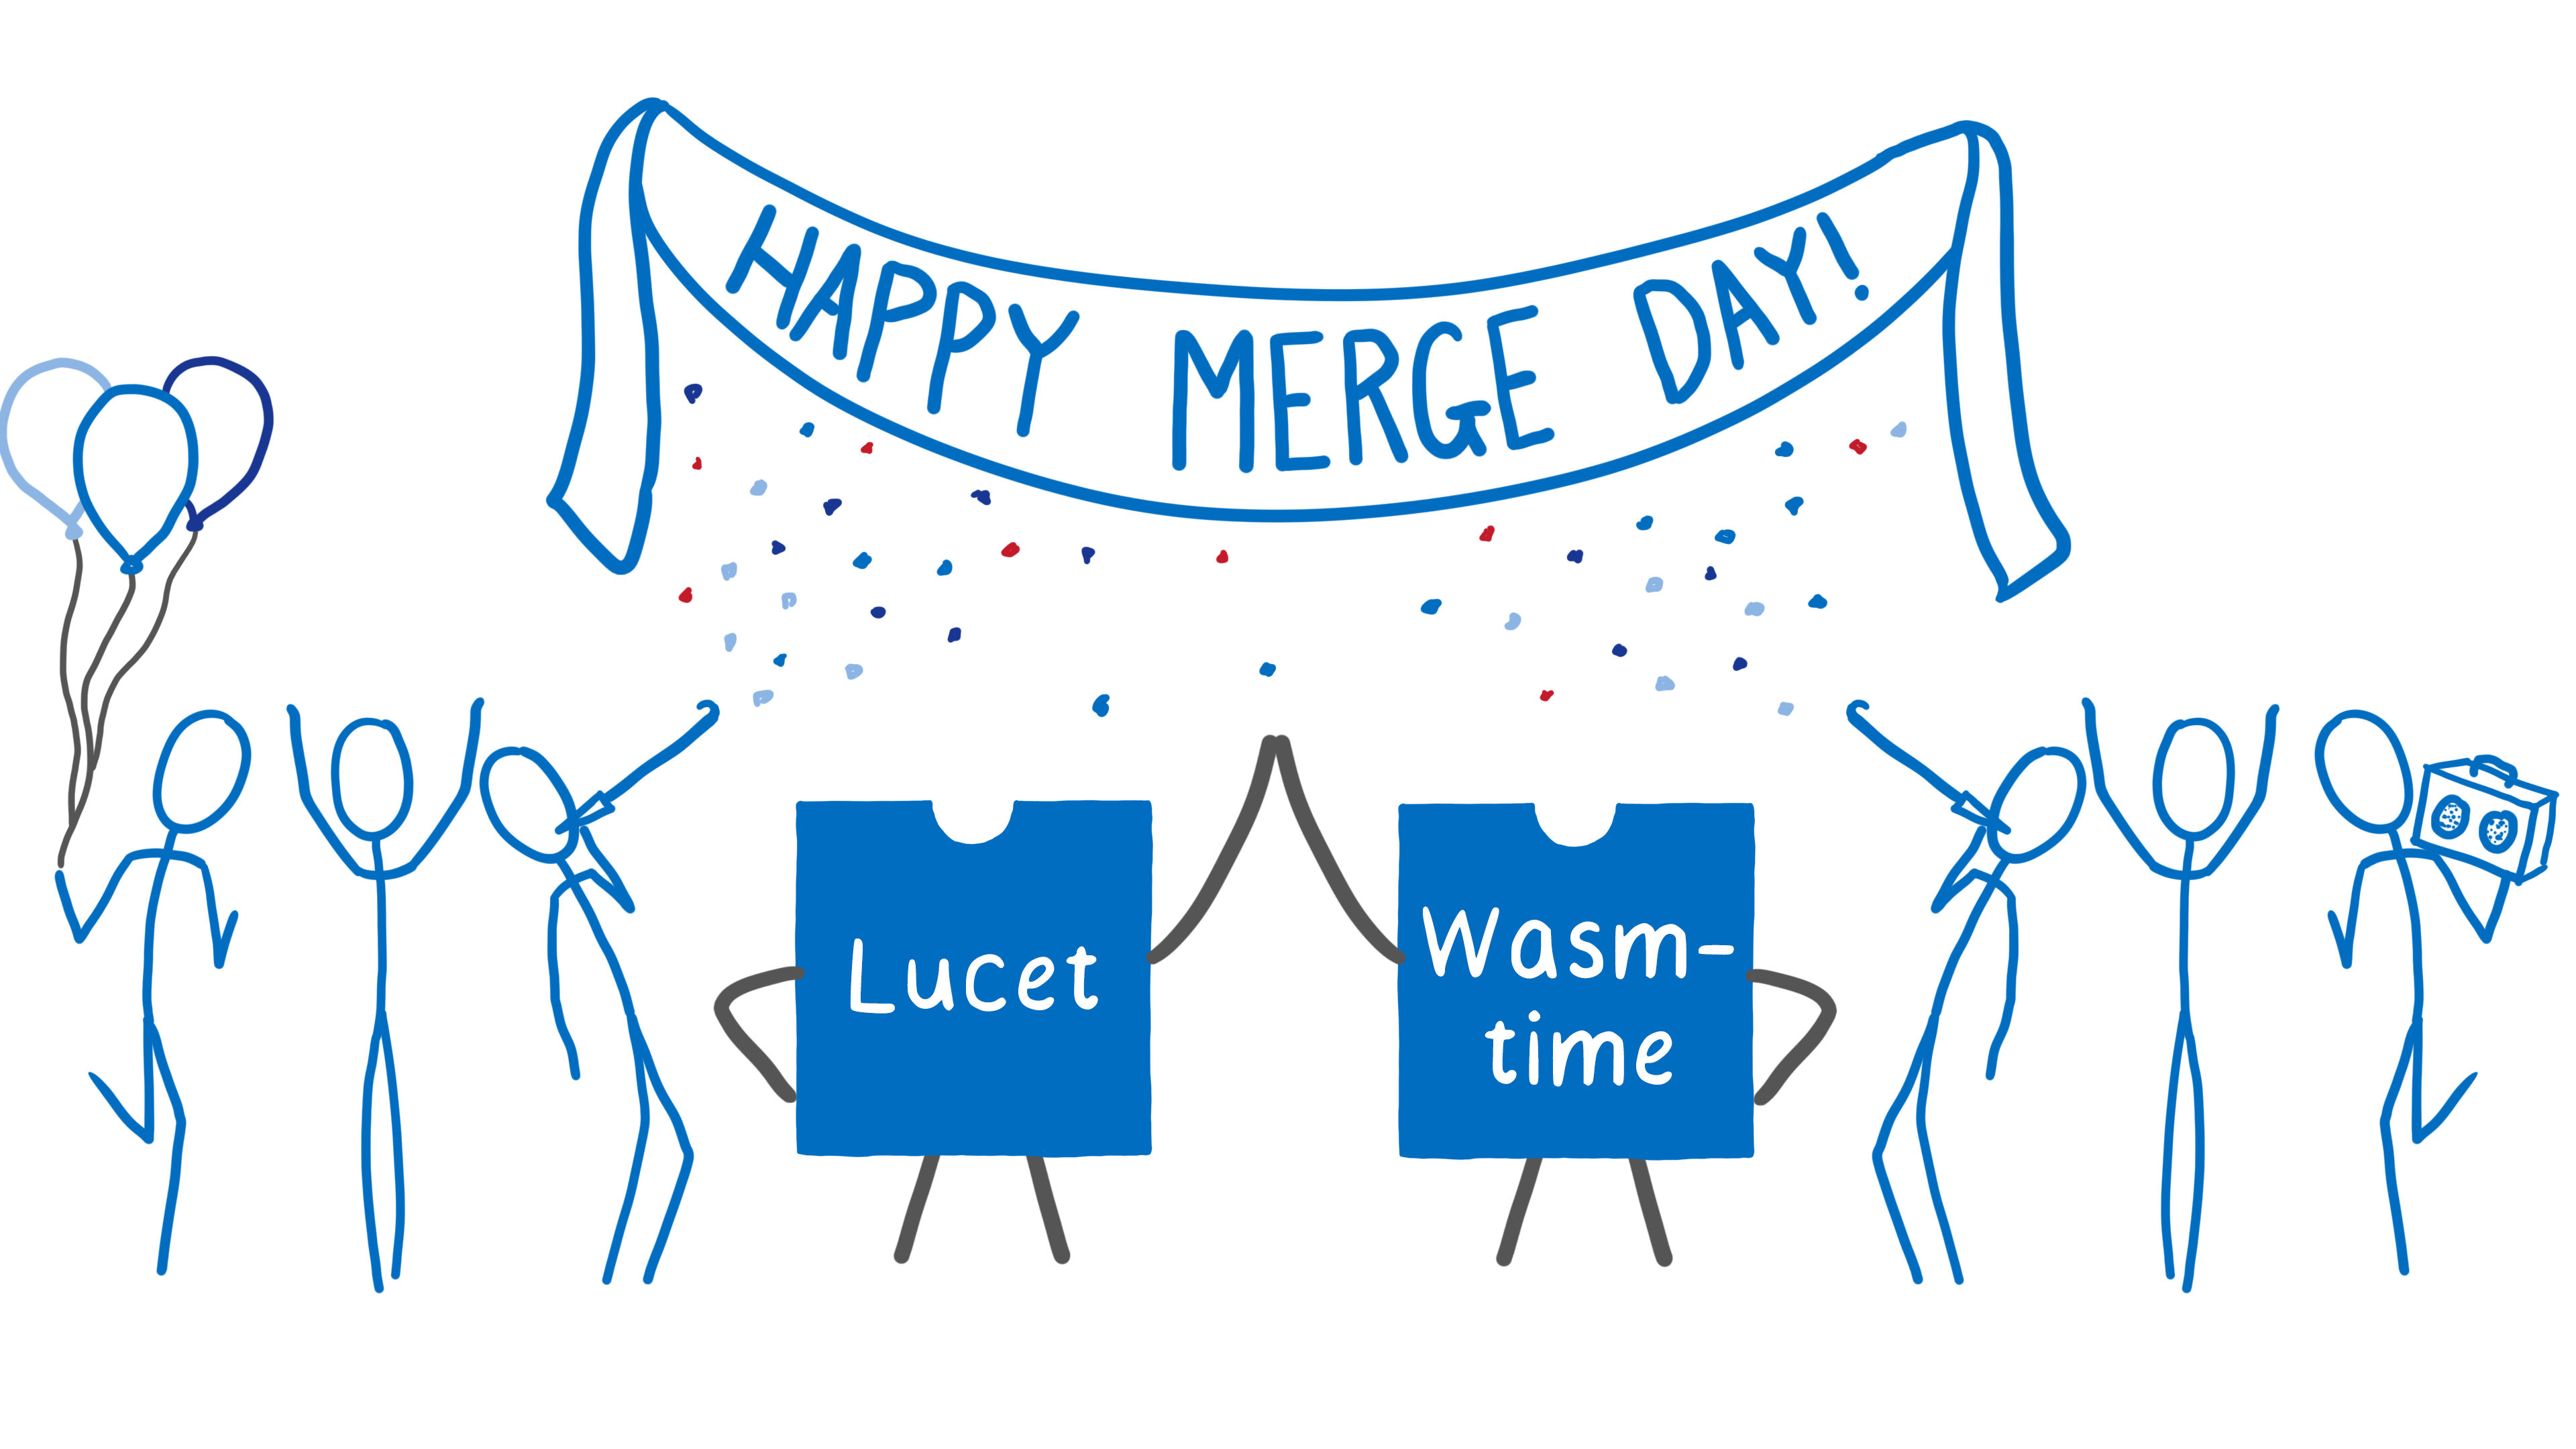 """Lucet and Wastime high fiving under a Happy Merge Day banner, while engineers party around them"""